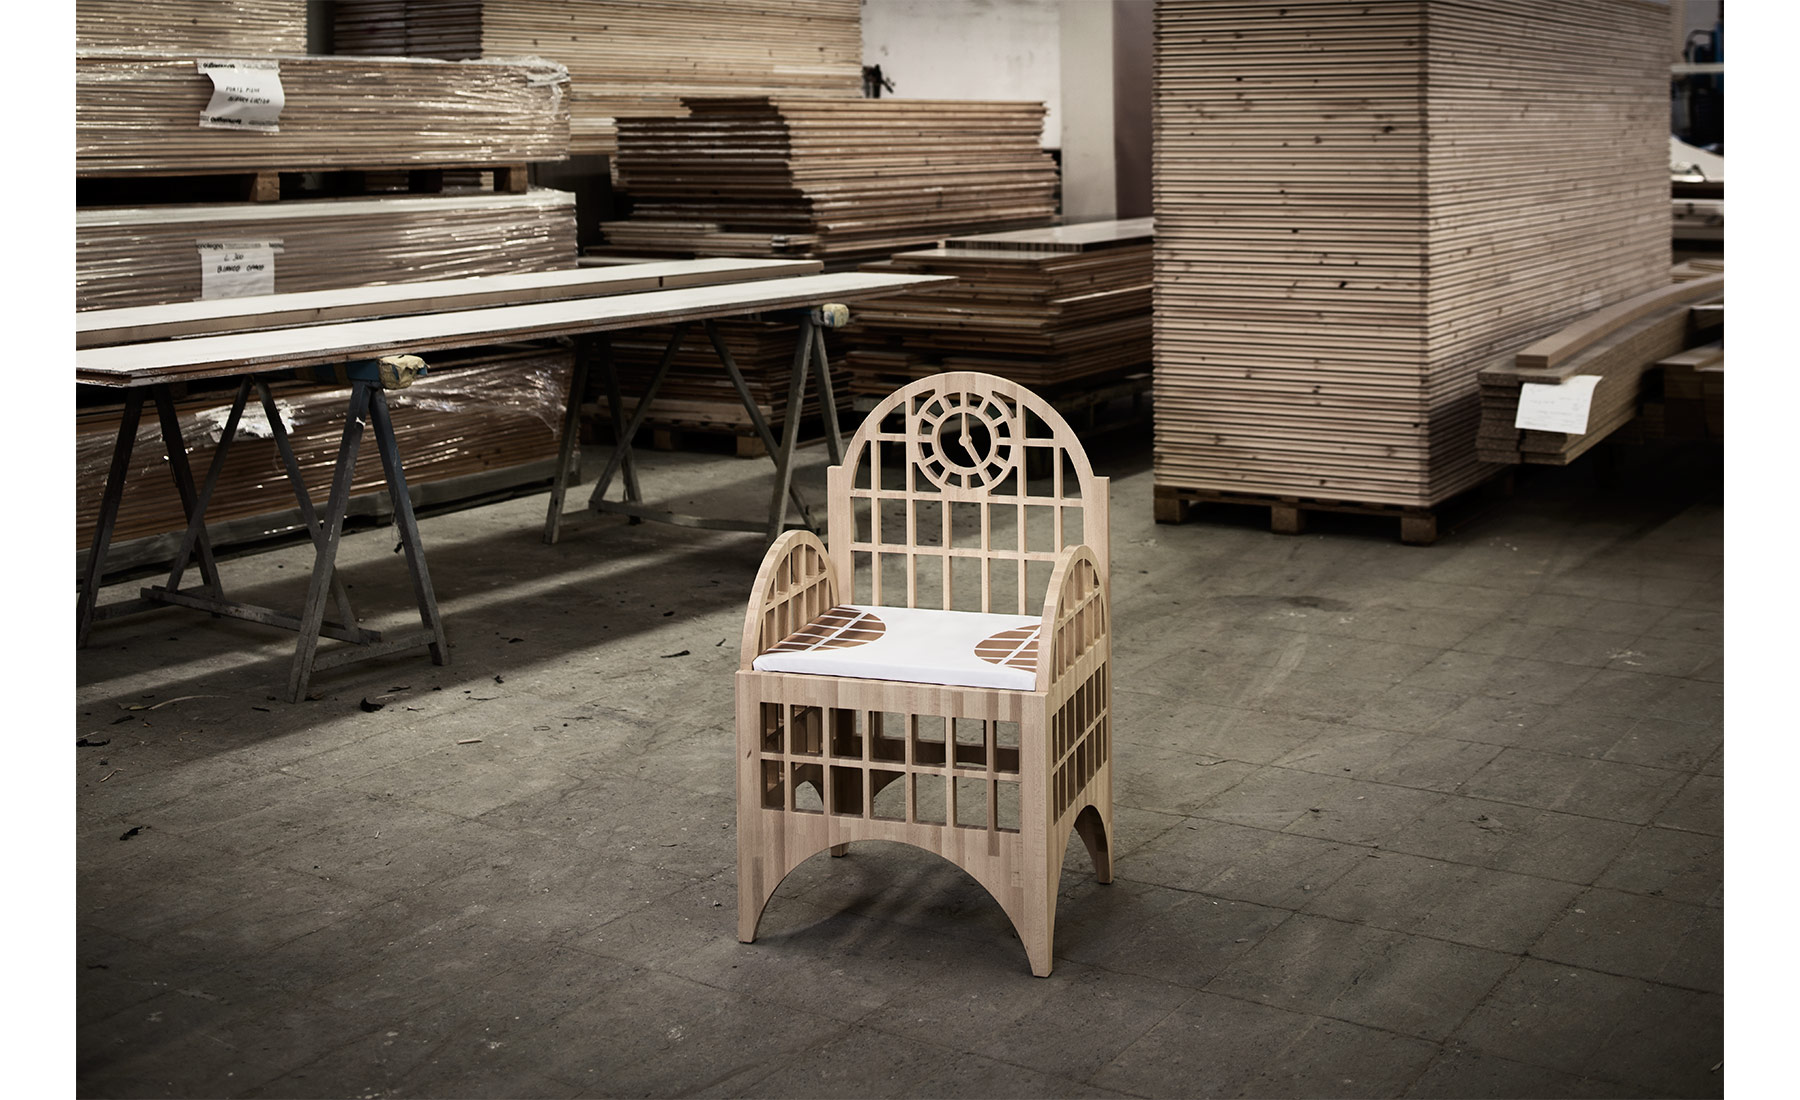 marco-tacchini-photographer-village-chairs_05